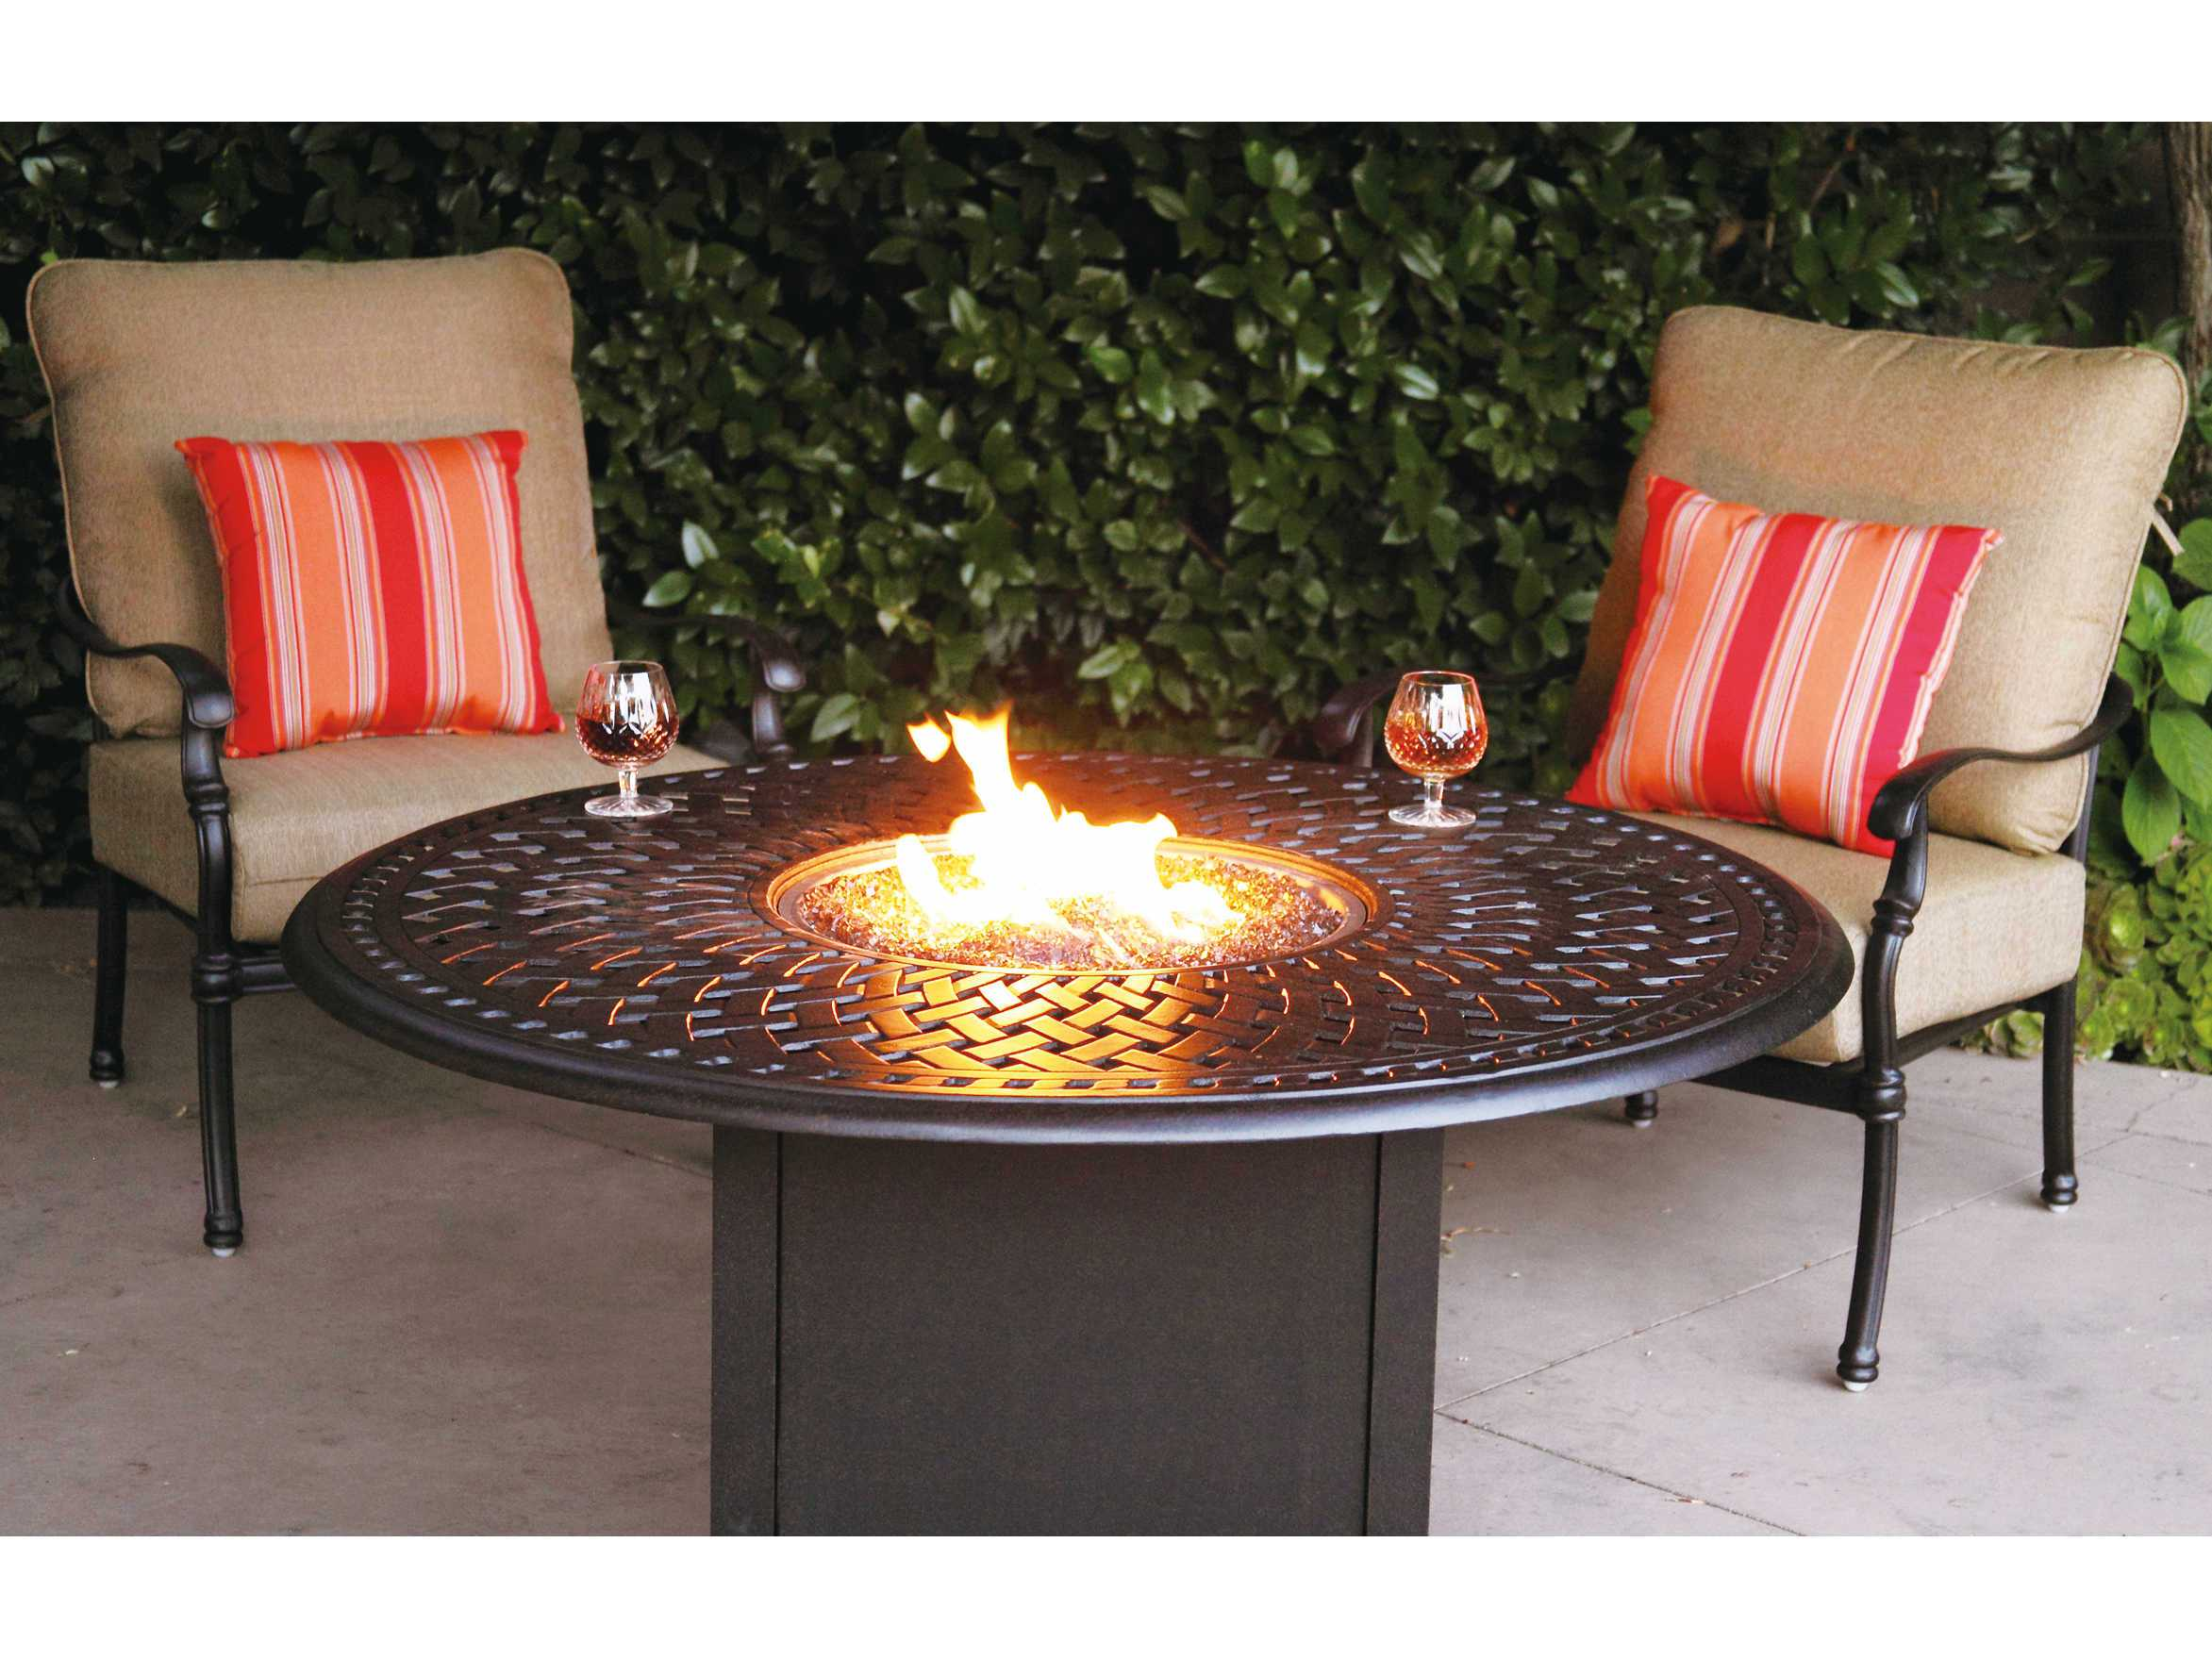 Darlee Outdoor Living Series 60 Cast Aluminum 60 Round Propane Fire Pit Dining Table 201060 GD